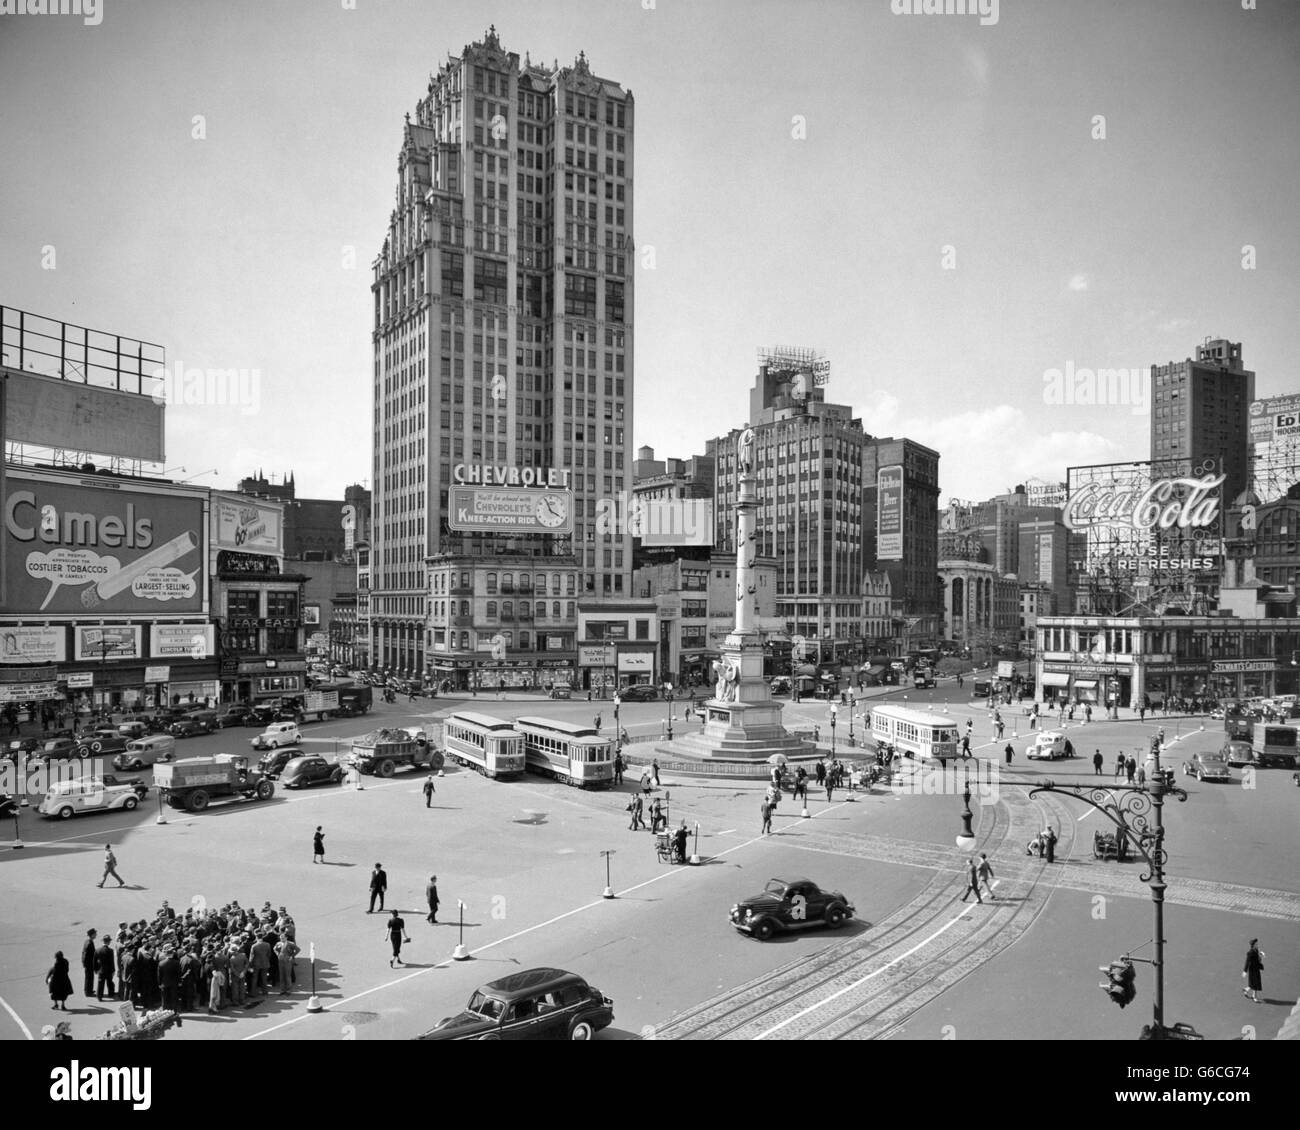 1930s COLUMBUS CIRCLE WITH COCA COLA SIGN AND TROLLEY CARS